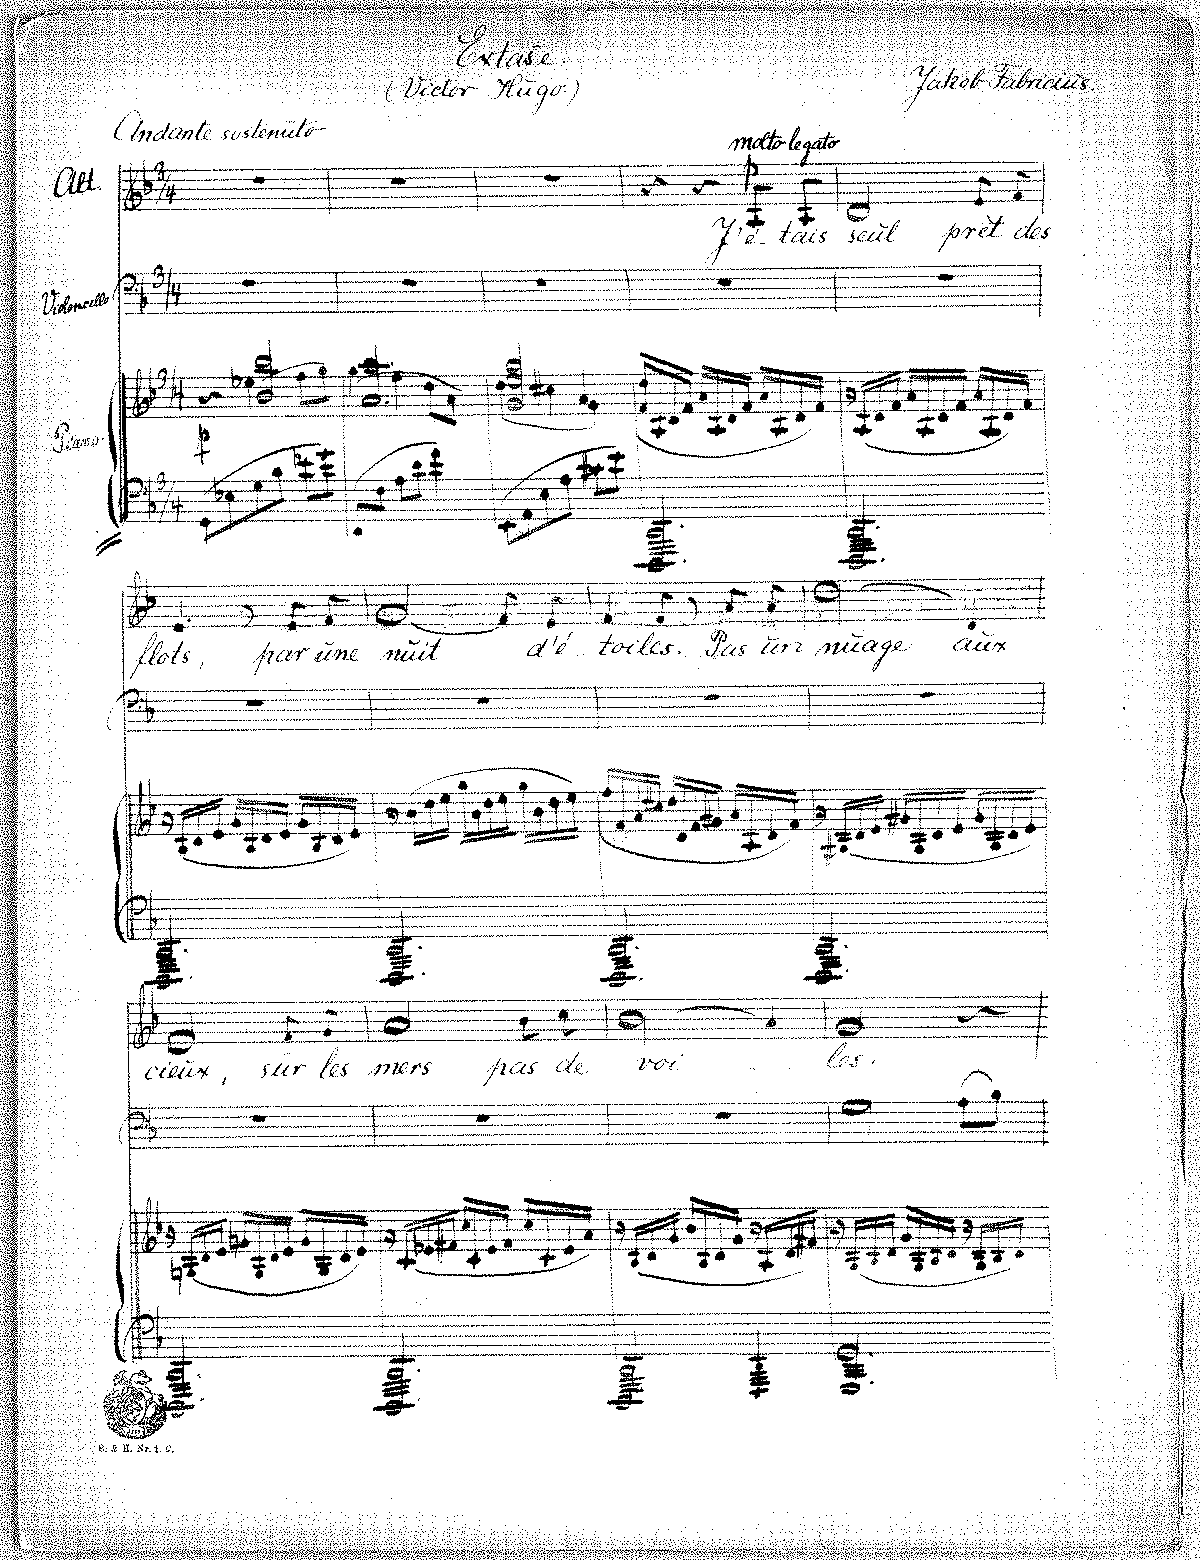 PMLP120258-Fabricius - Extase (Victor Hugo) for Alt Cello and Piano (Ms autograph).pdf